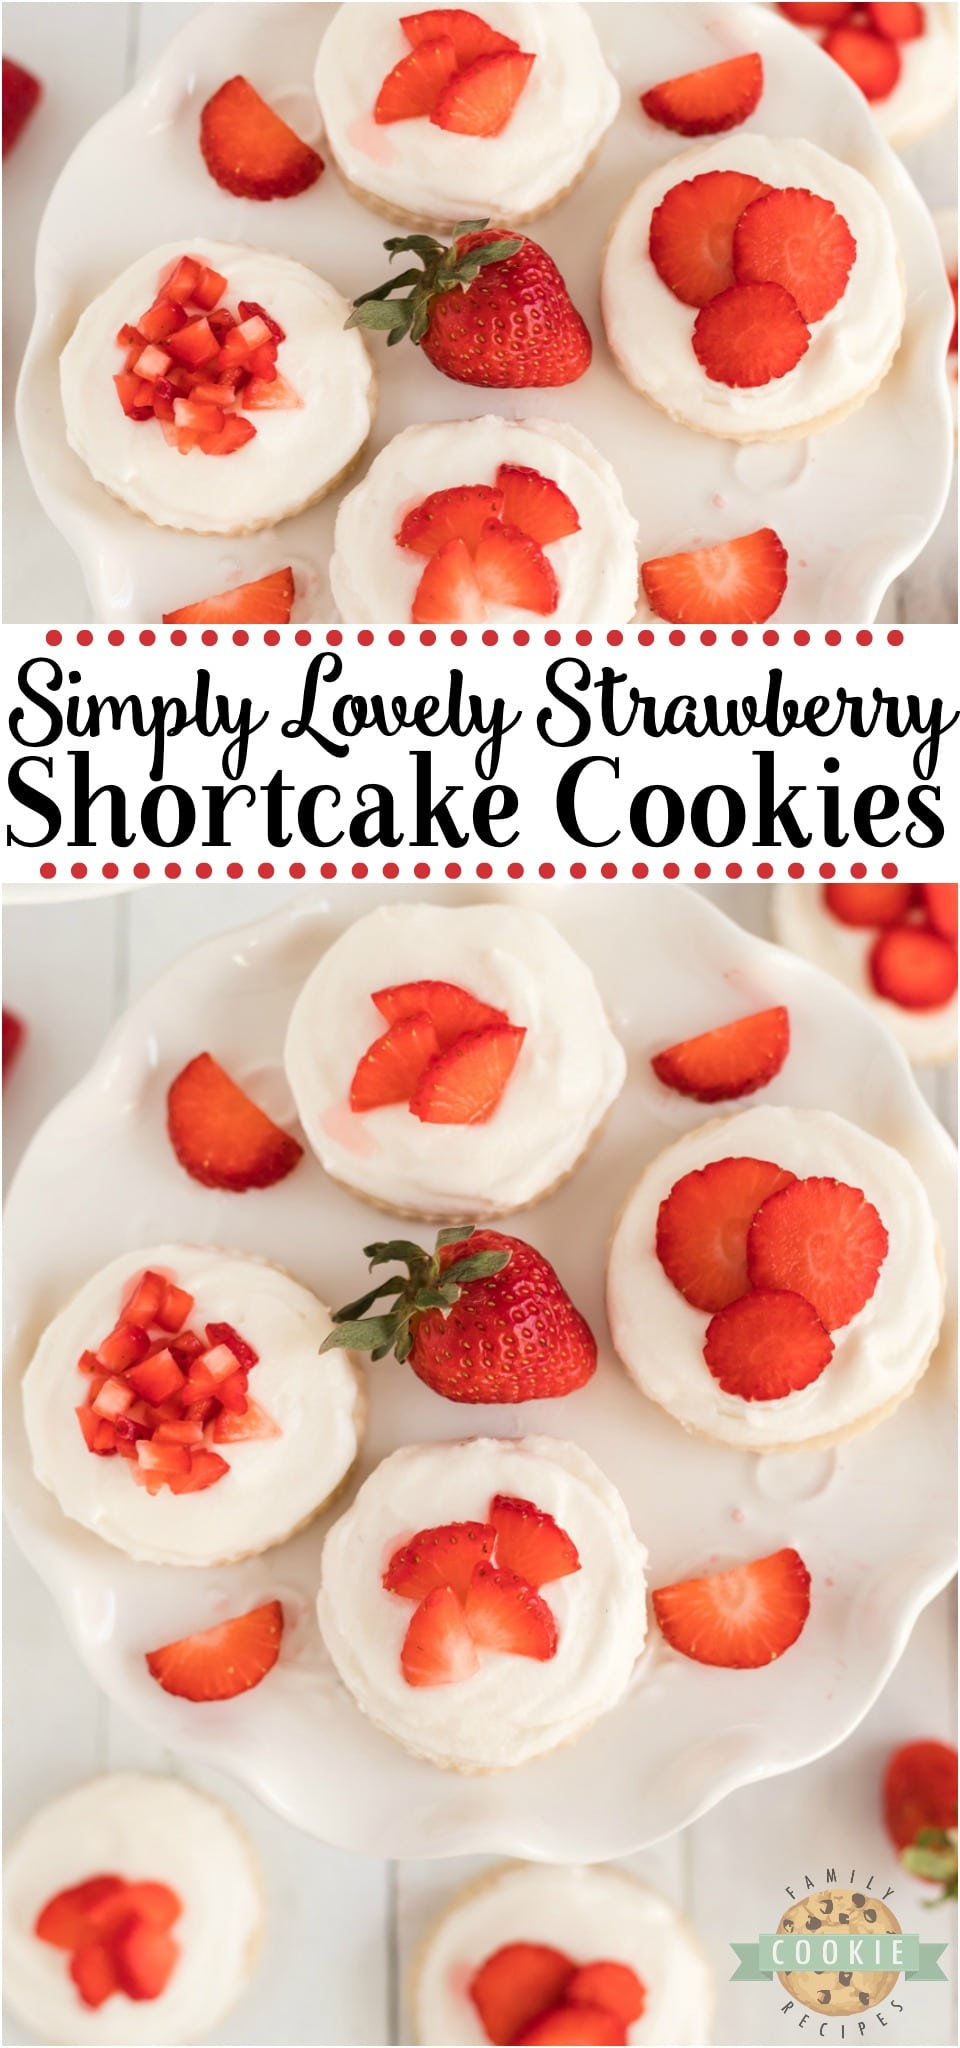 Strawberry shortcake cookies are a delicious sugar cookie topped with whipped cream and fresh sliced strawberries. Every sweet bite reminds you of traditional strawberry shortcakes! #cookies #strawberry #shortcake #baking #dessert #easyrecipe from FAMILY COOKIE RECIPES via @familycookierecipes